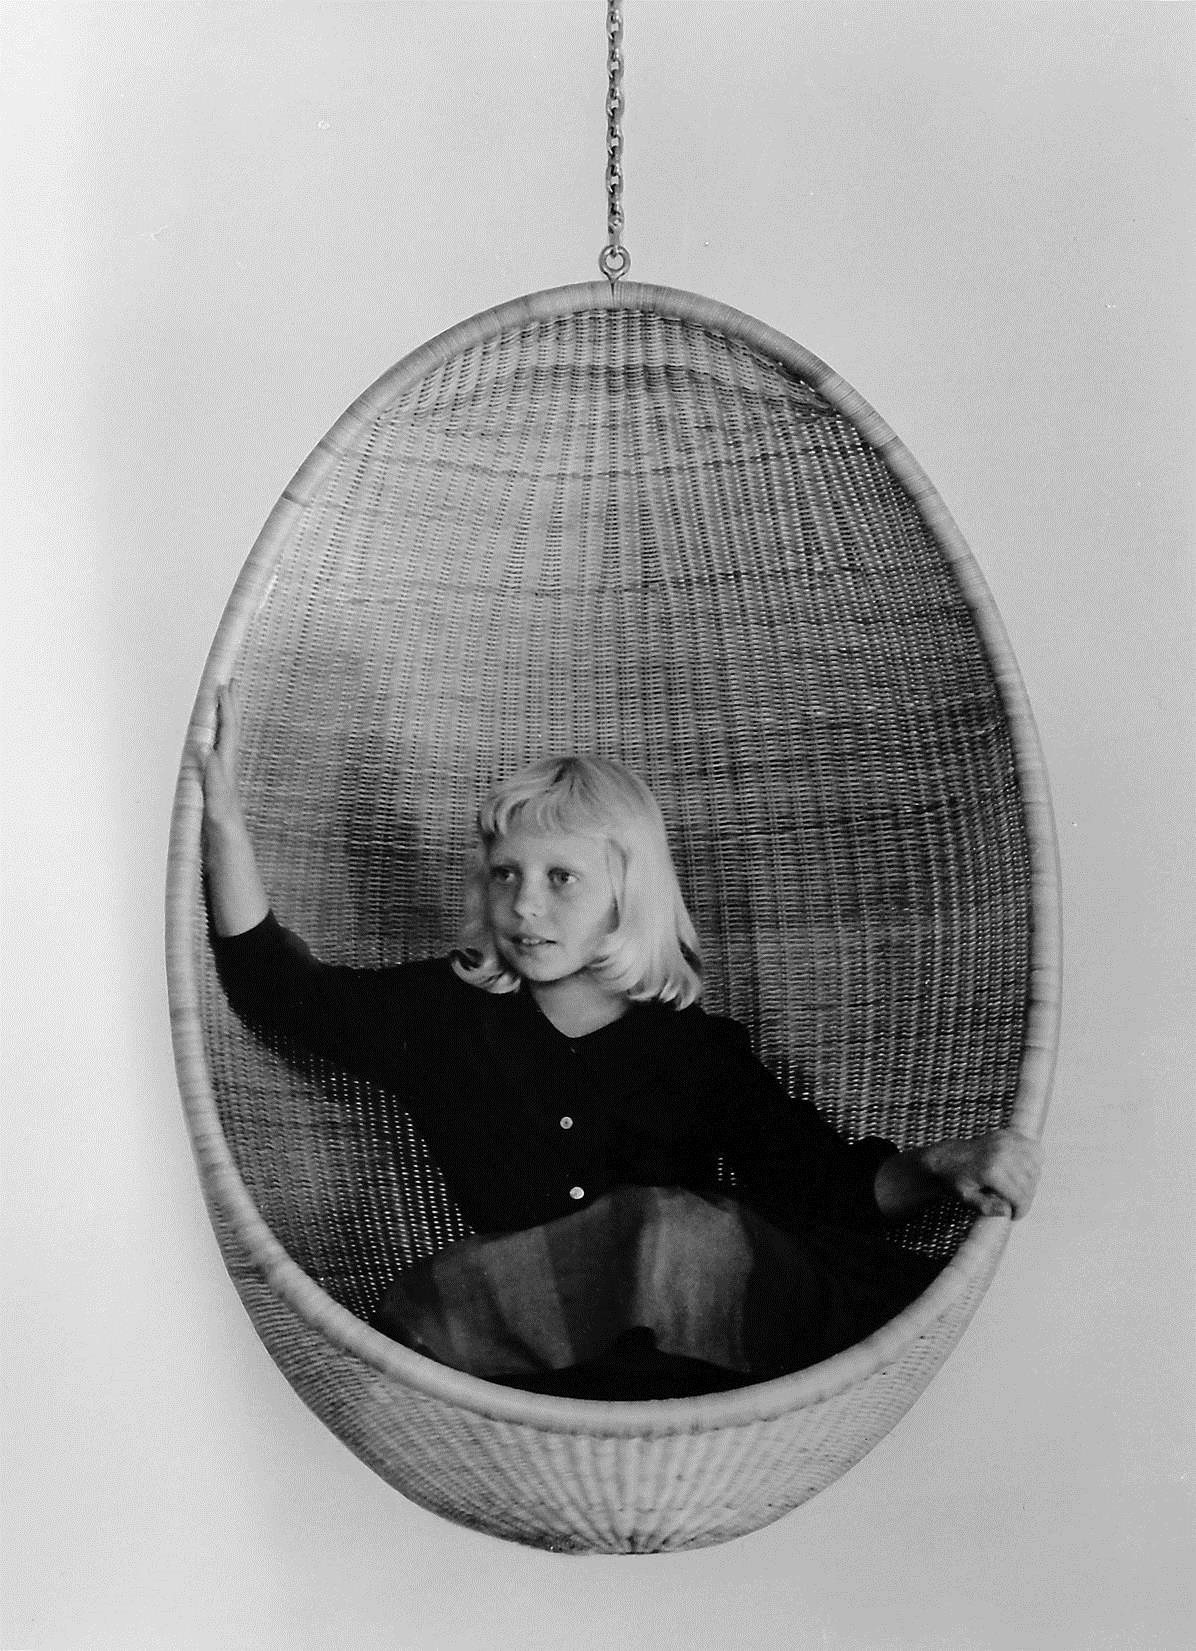 1957 Hanging Egg Chair designed by Nanna & Jørgen Ditzel - daughter Dennie Ditzel